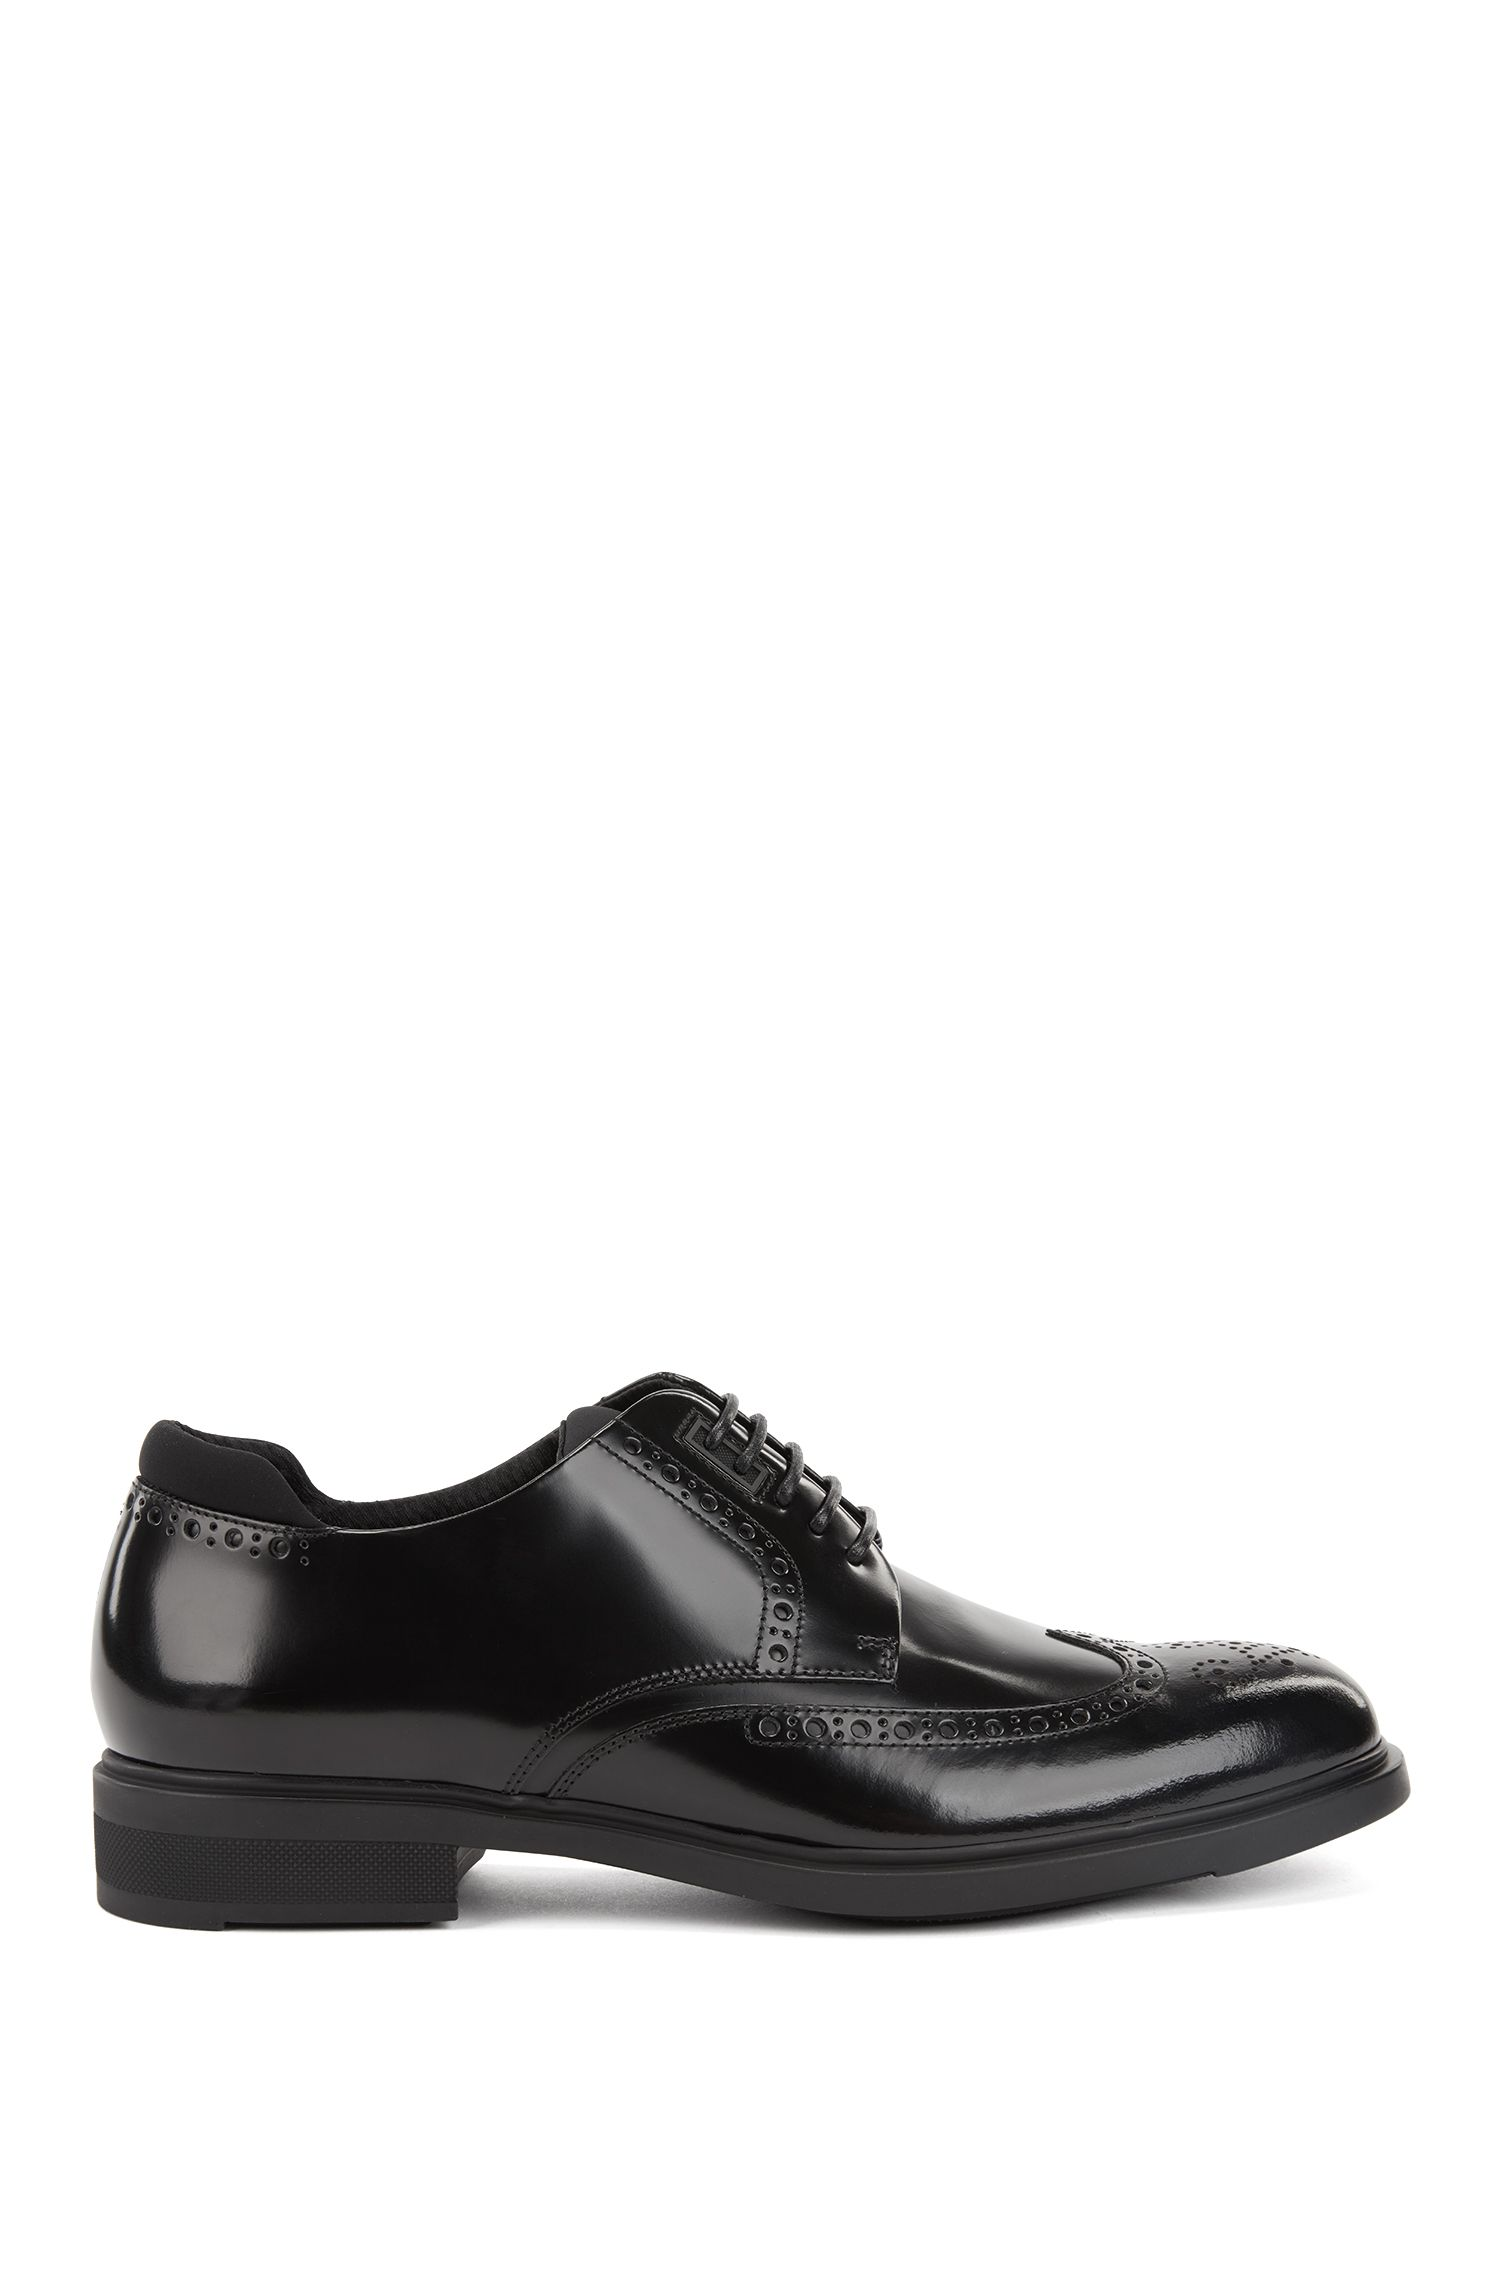 Scarpe derby in pelle con fodera interna Outlast®, Nero